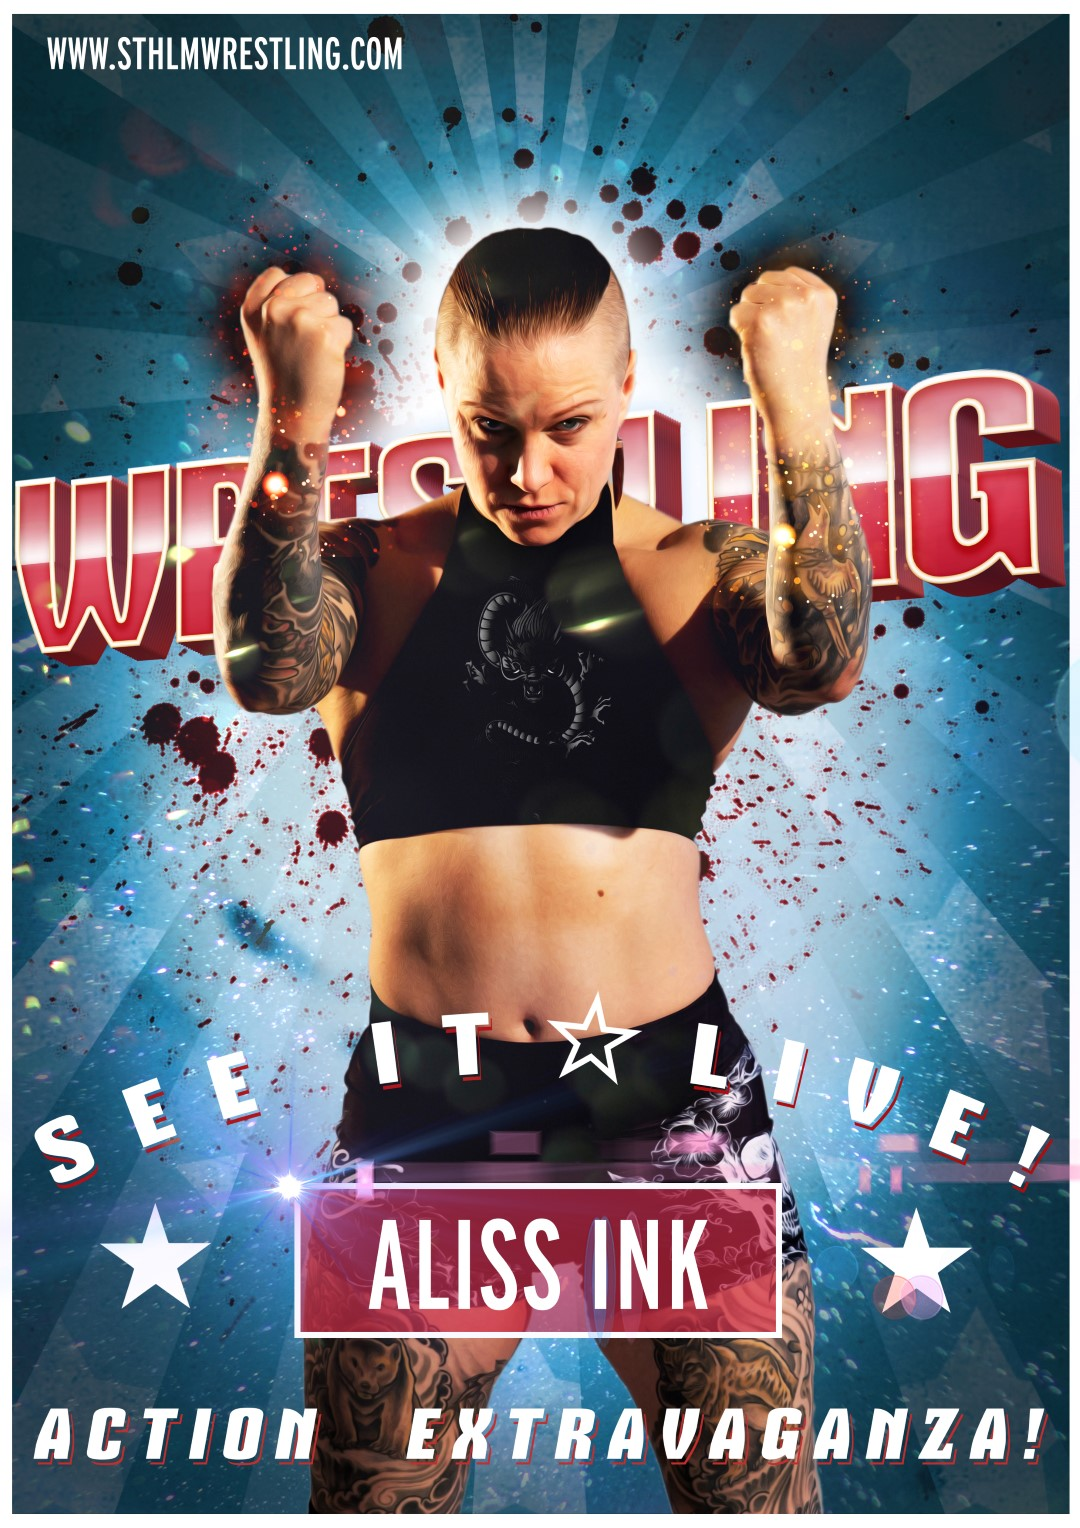 Aliss Ink